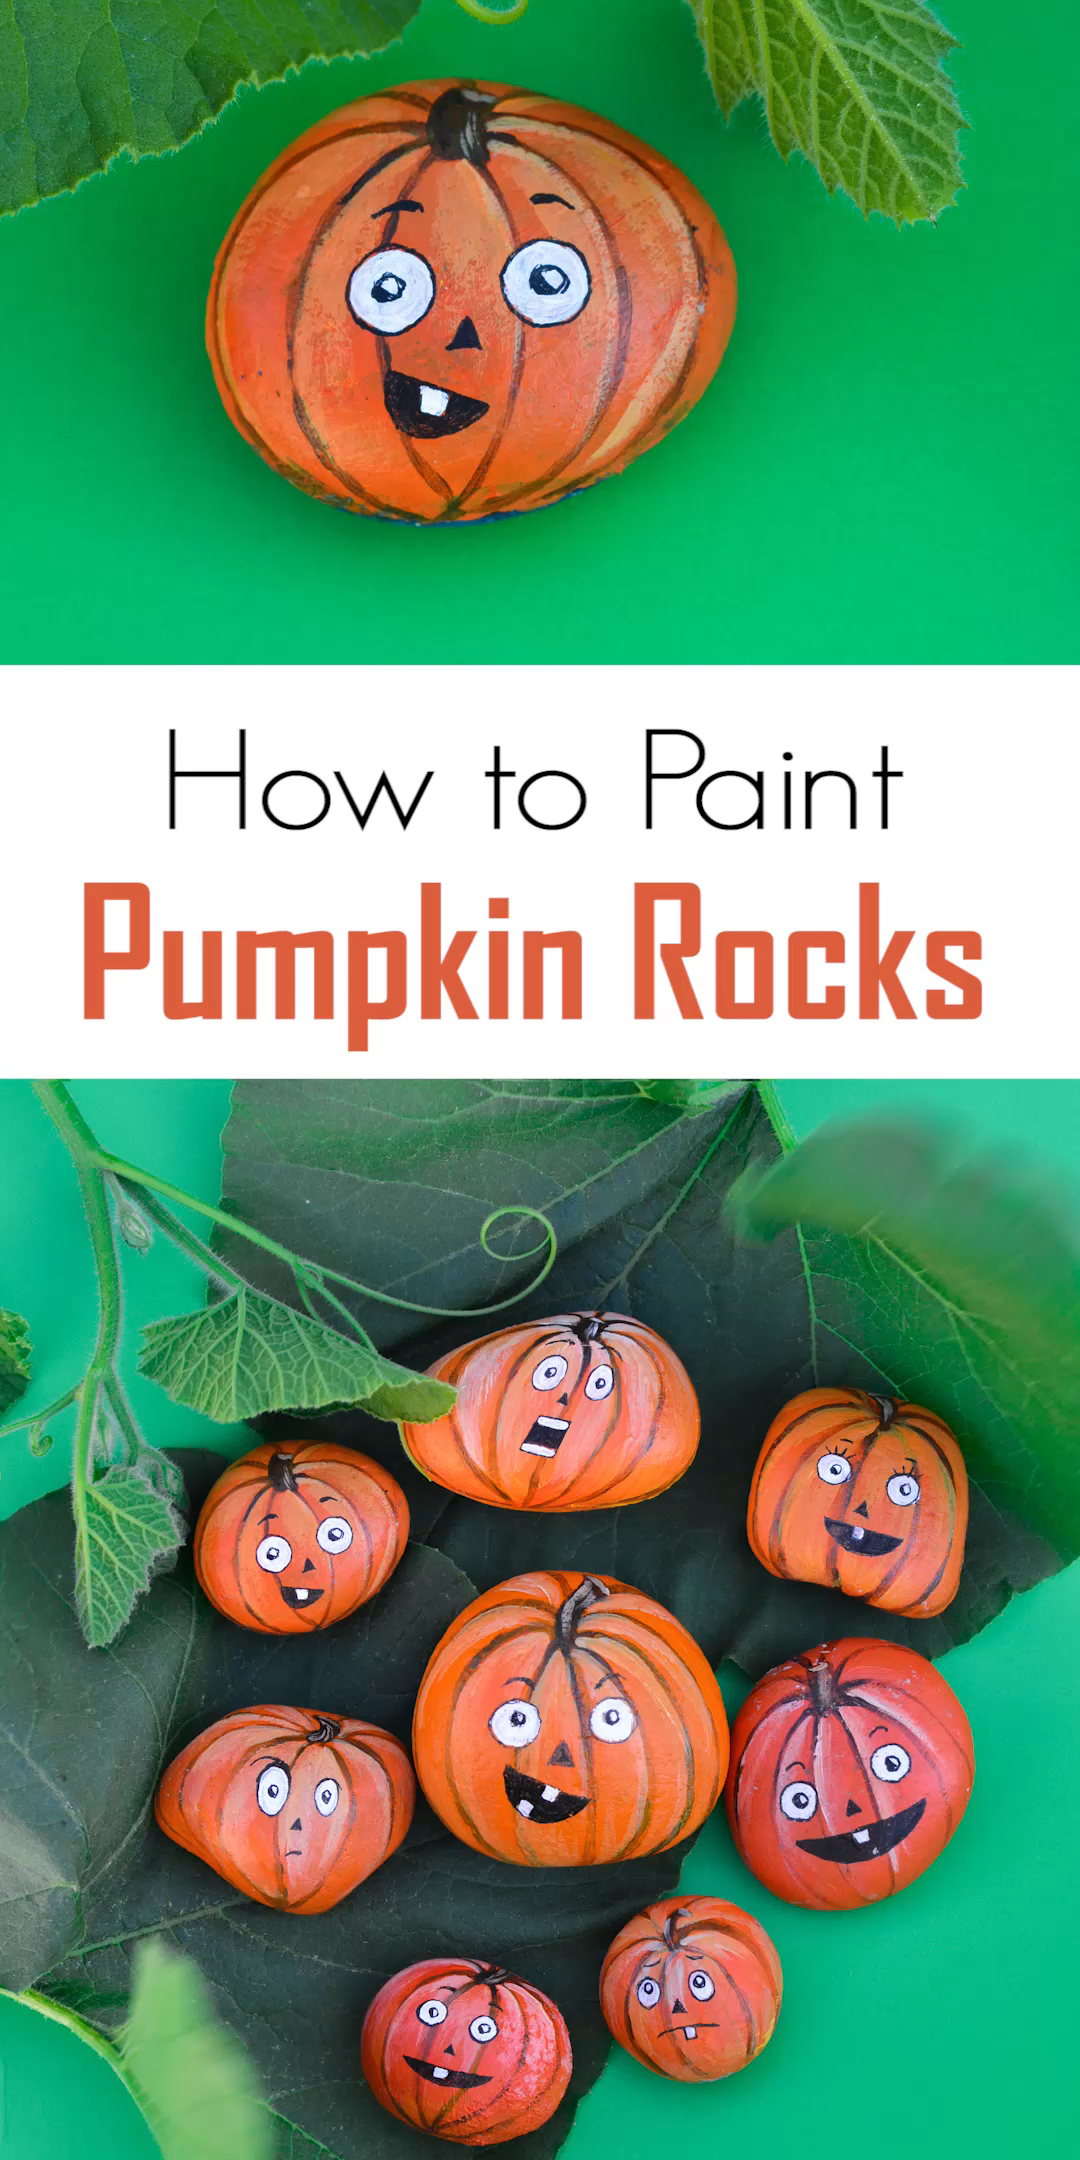 Painted Pumpkin Rocks